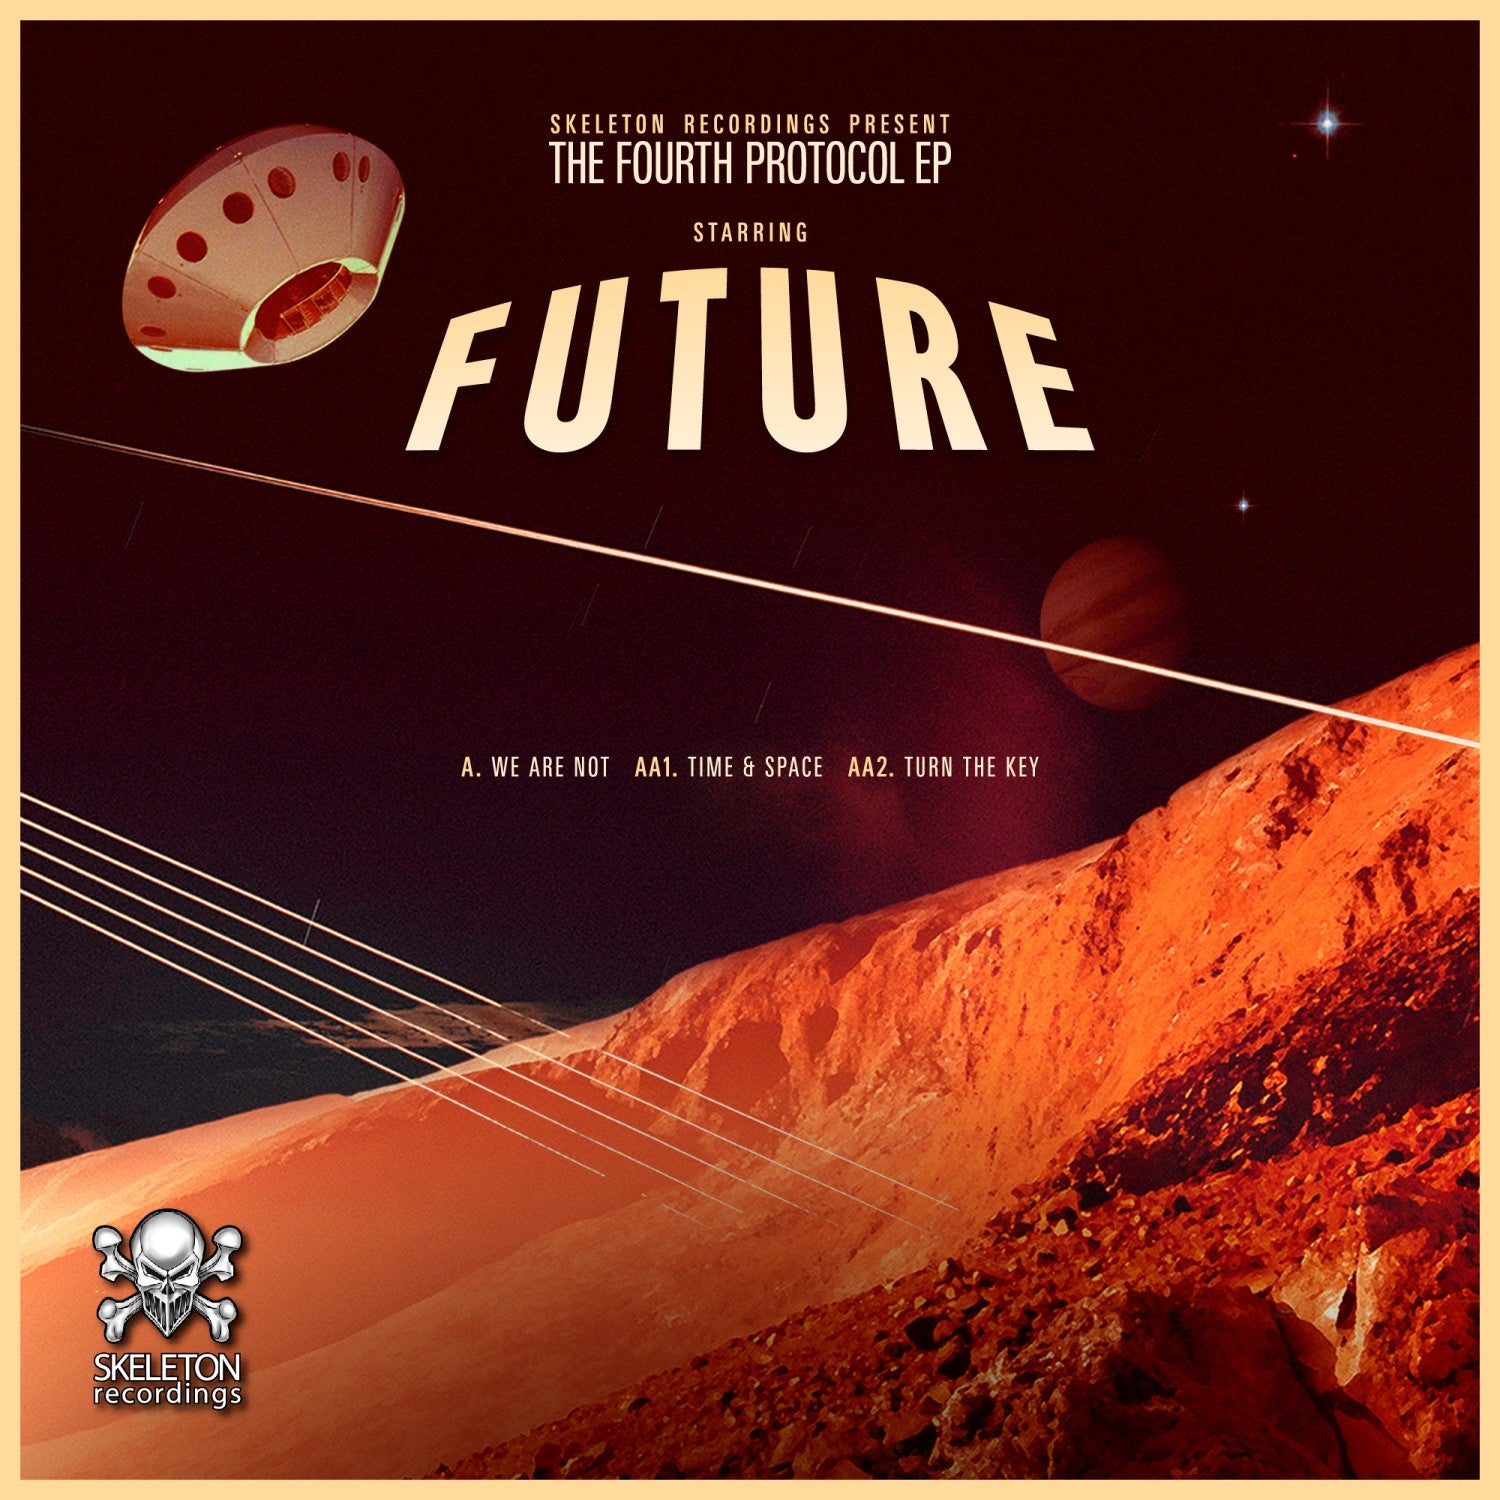 Future - The Fourth Protocol , Vinyl - Skeleton Recordings, Unearthed Sounds